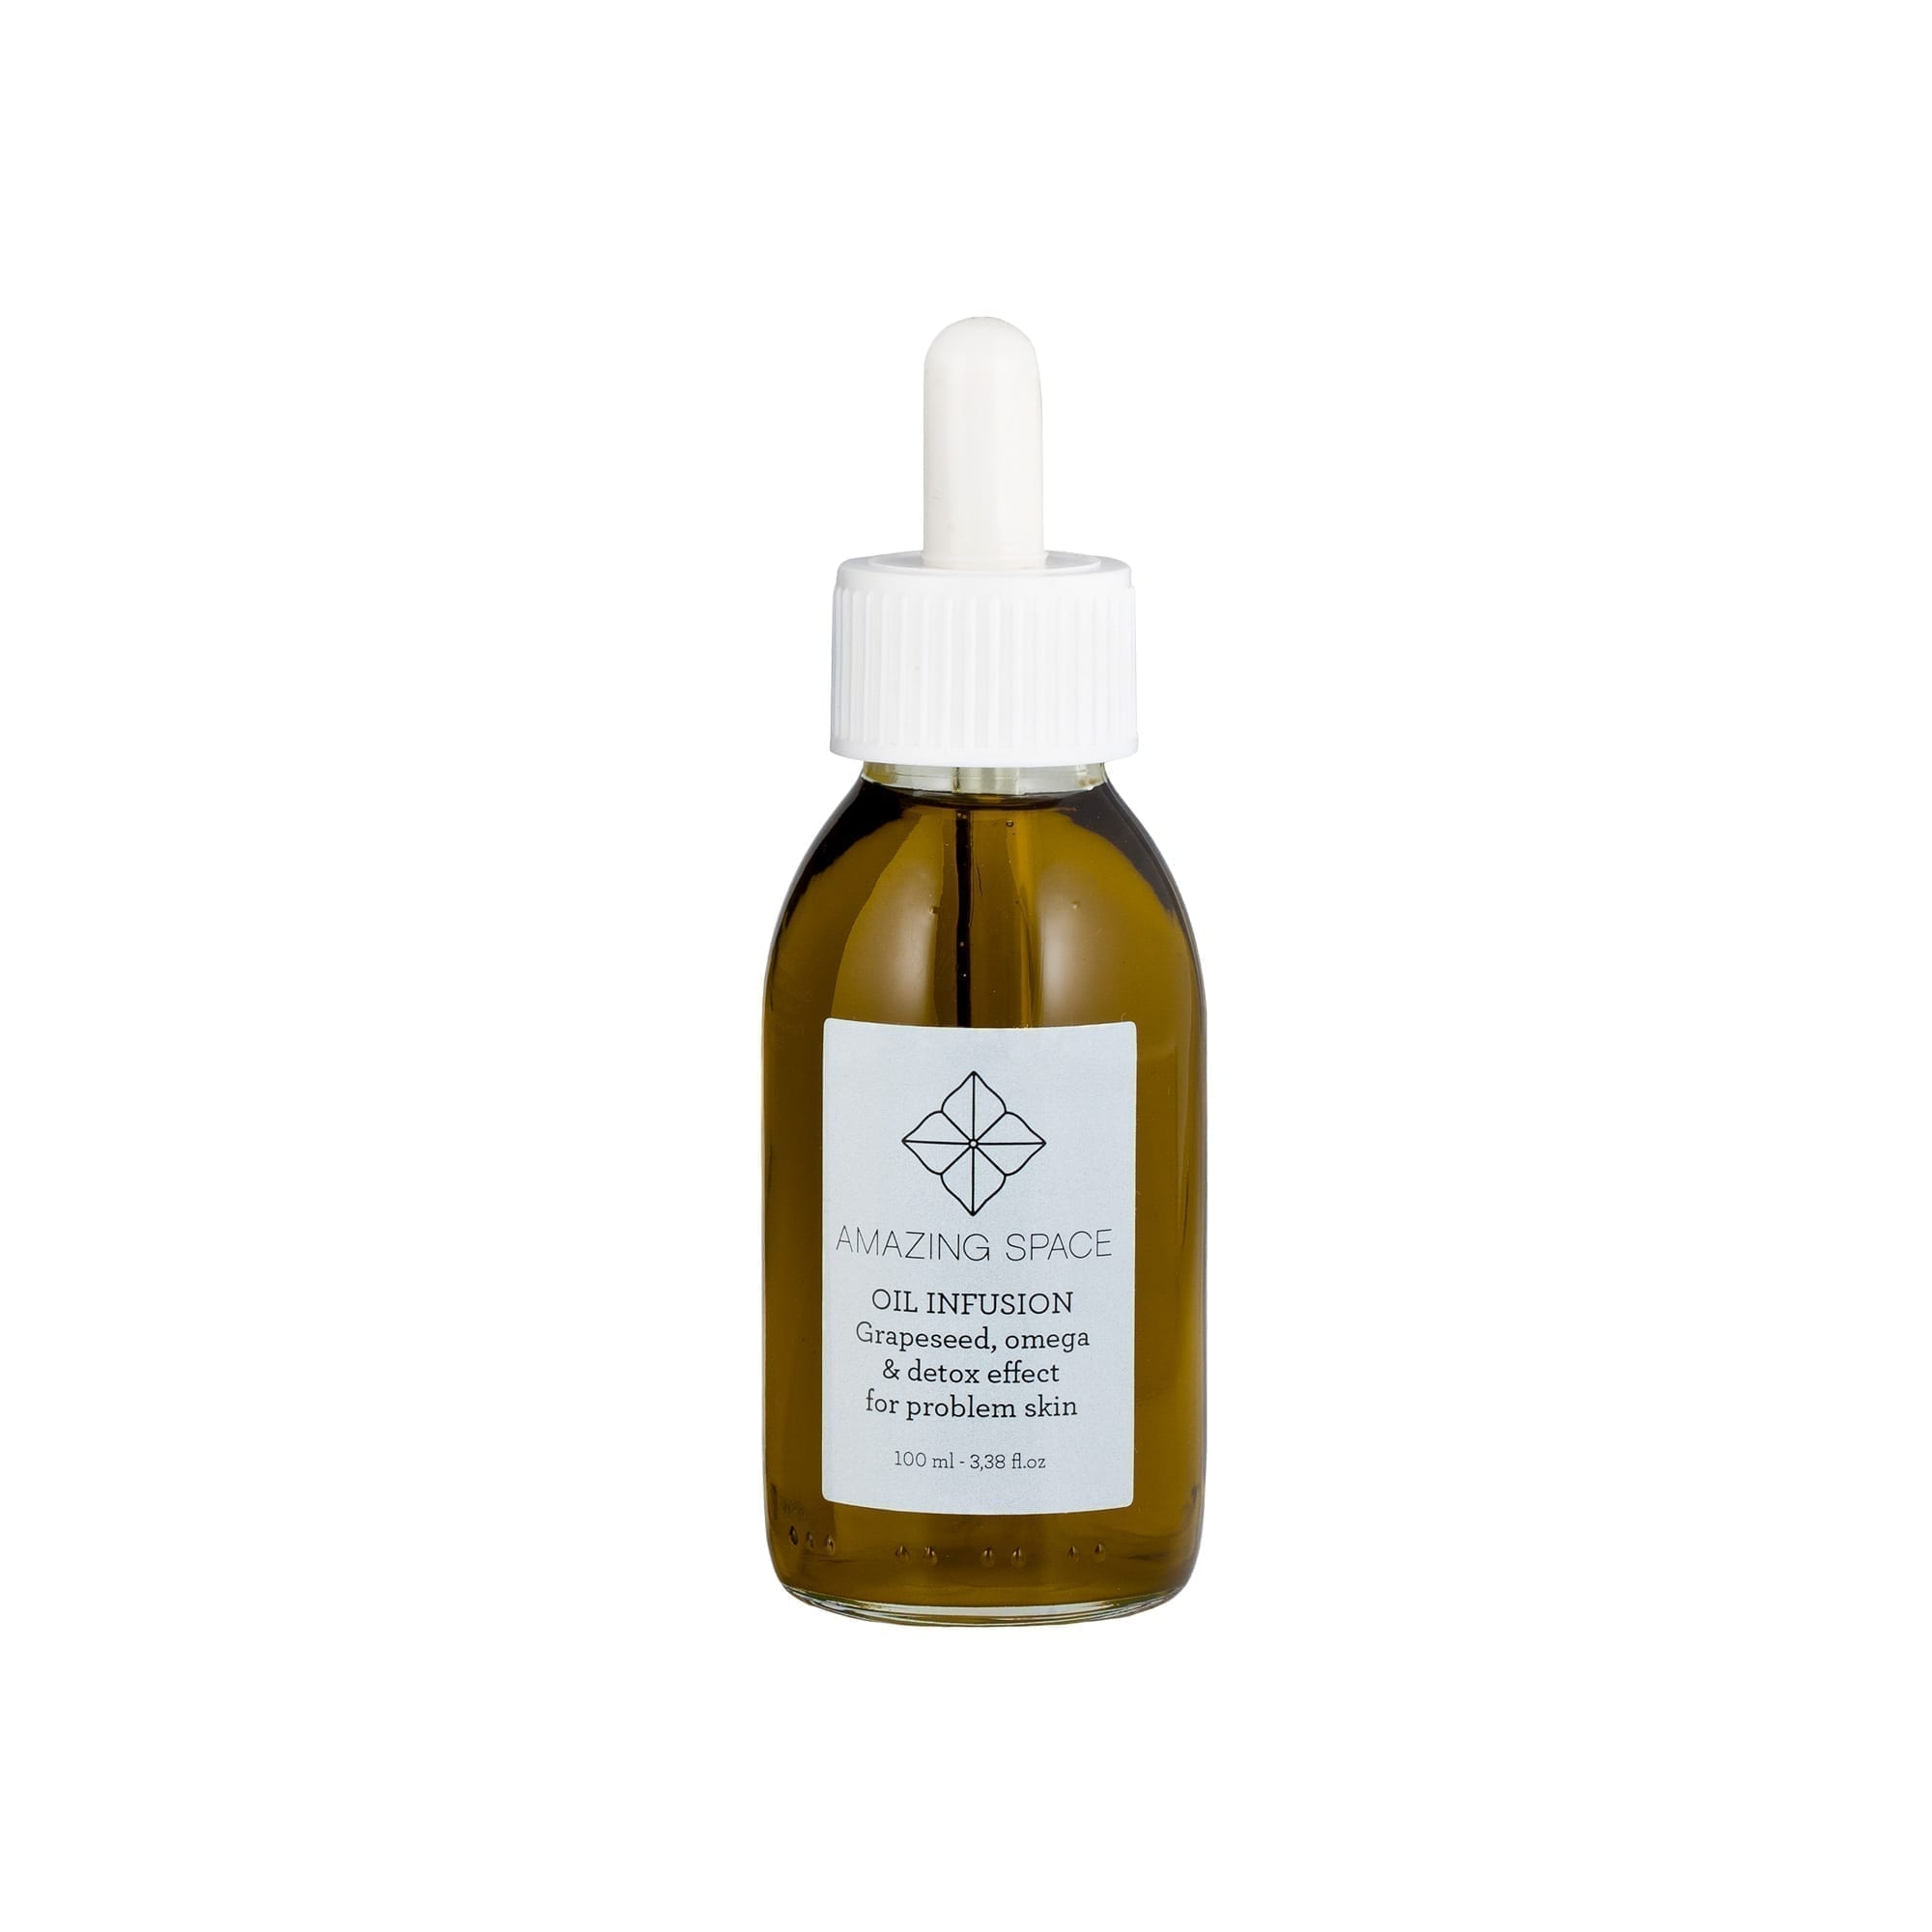 Oil Infusion Grapeseed - Omega & Antioxidants For Oily & Problem Skin - Amazing Space